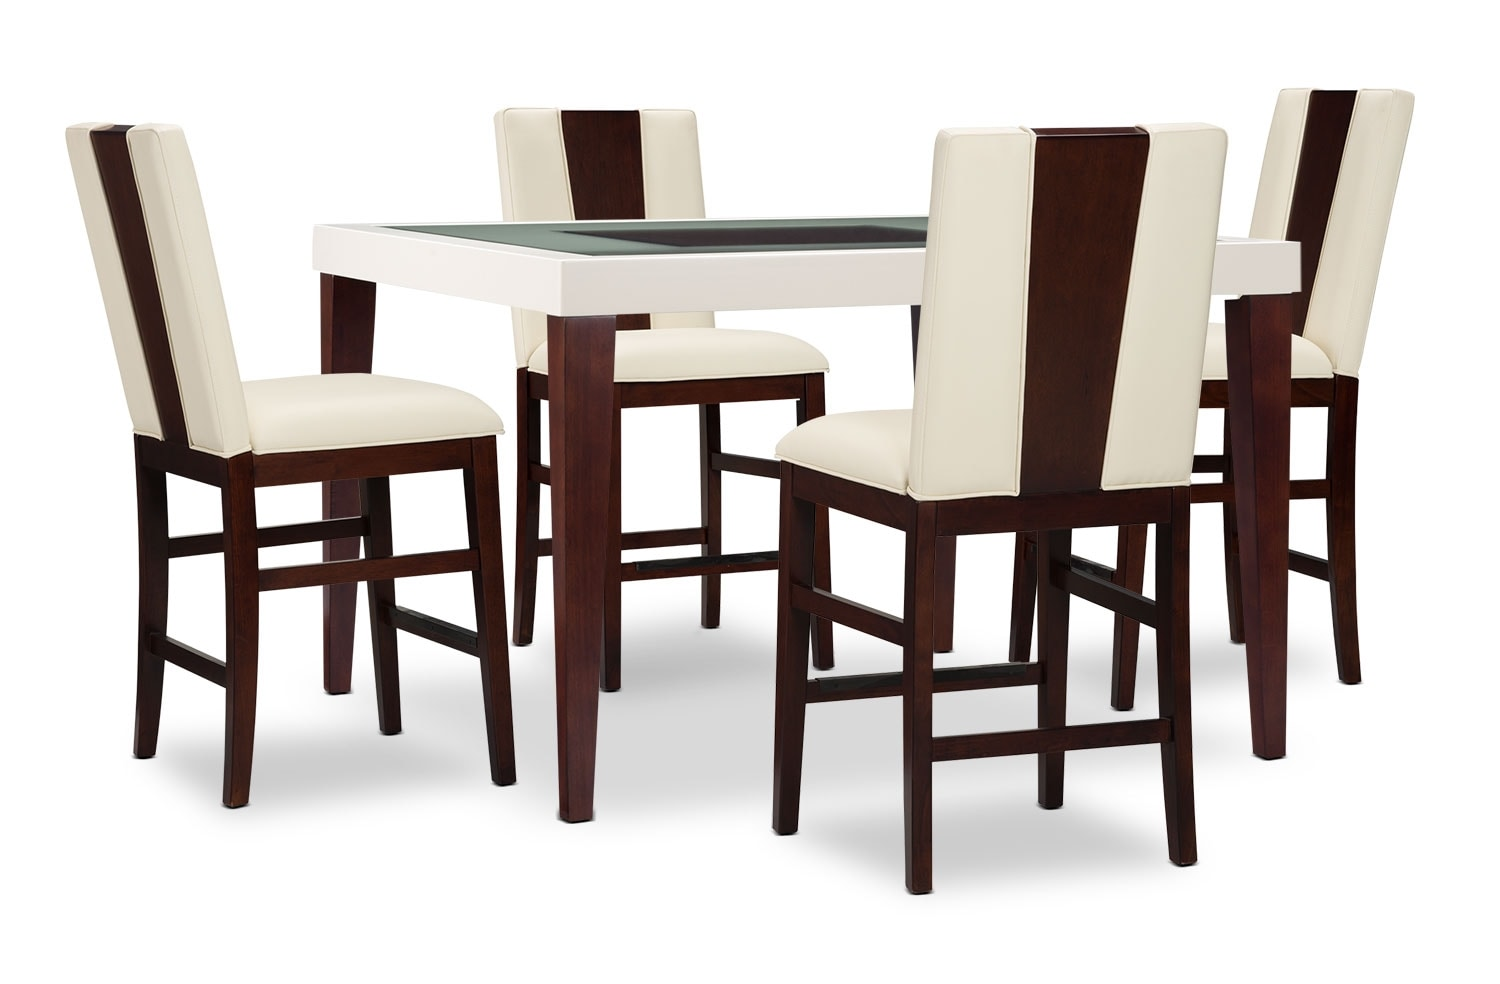 Dining Room Furniture - Zeno 5-Piece Counter-Height Dining Package with Wood Back Chair